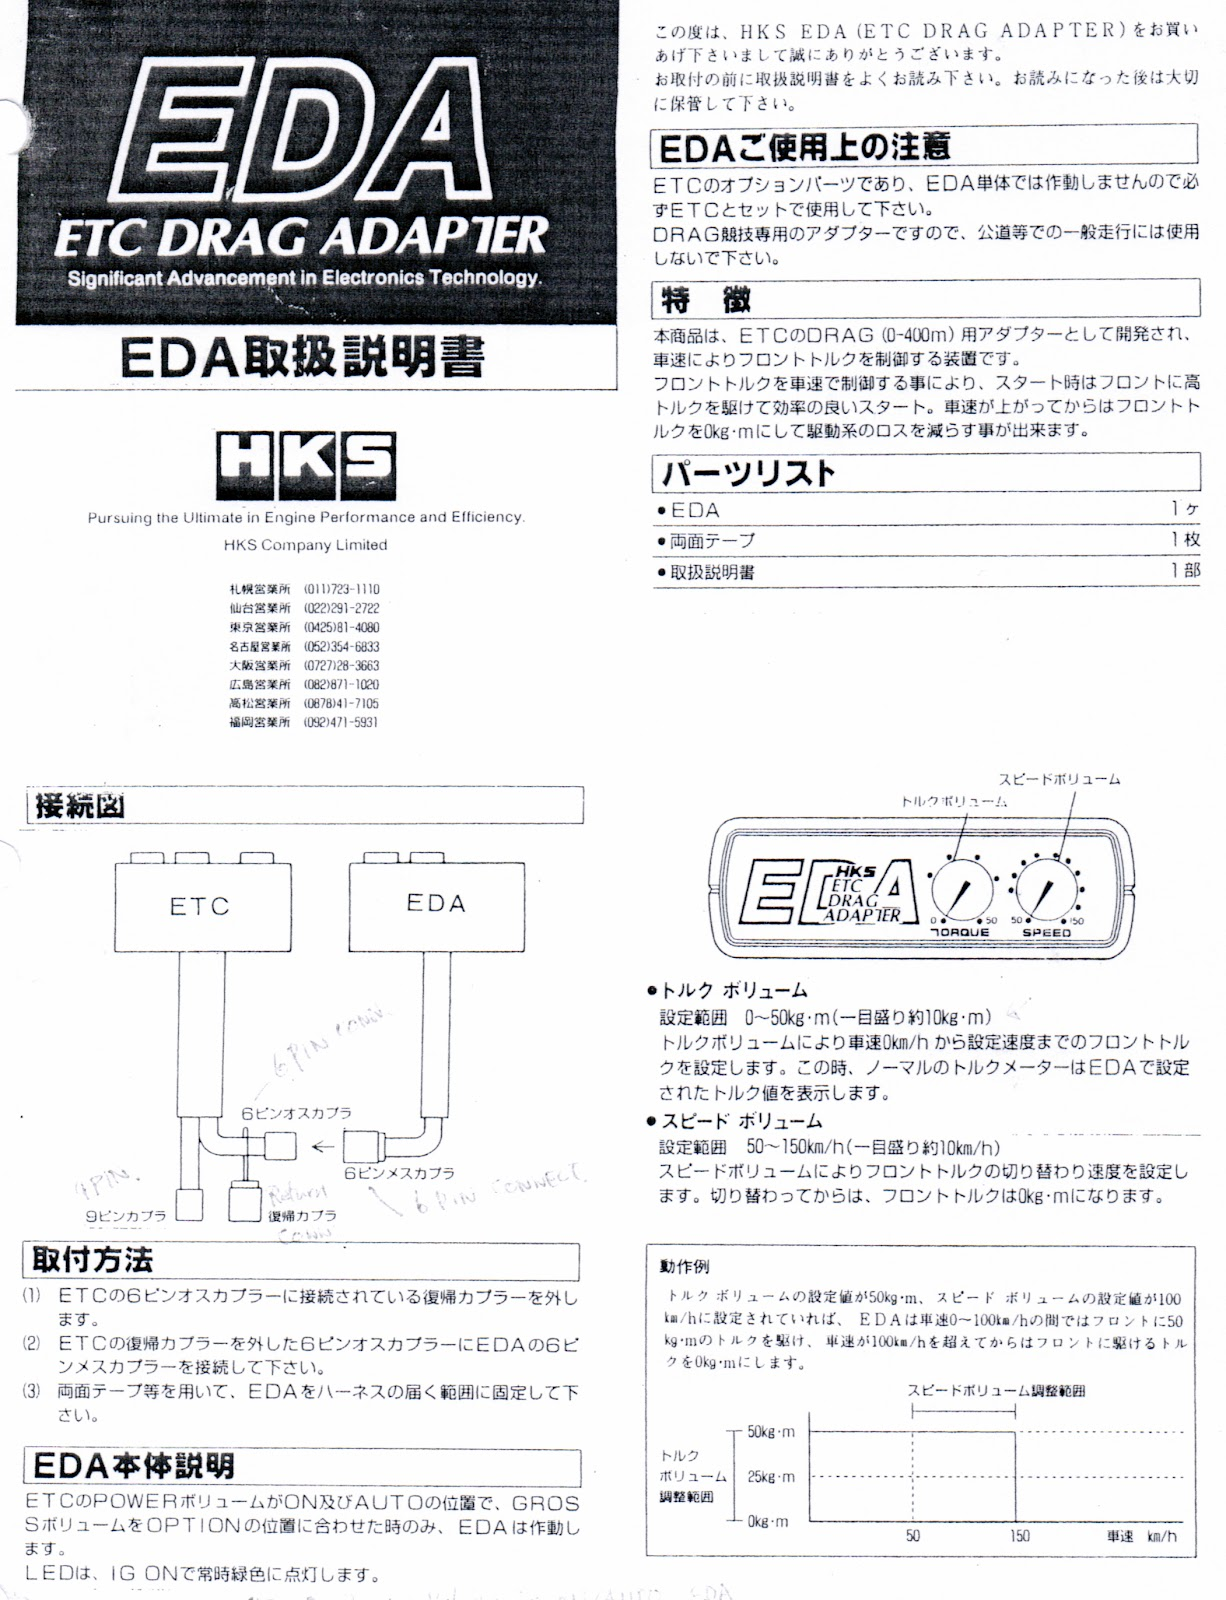 Hks Etc And Eda Drag Adapter Instructions